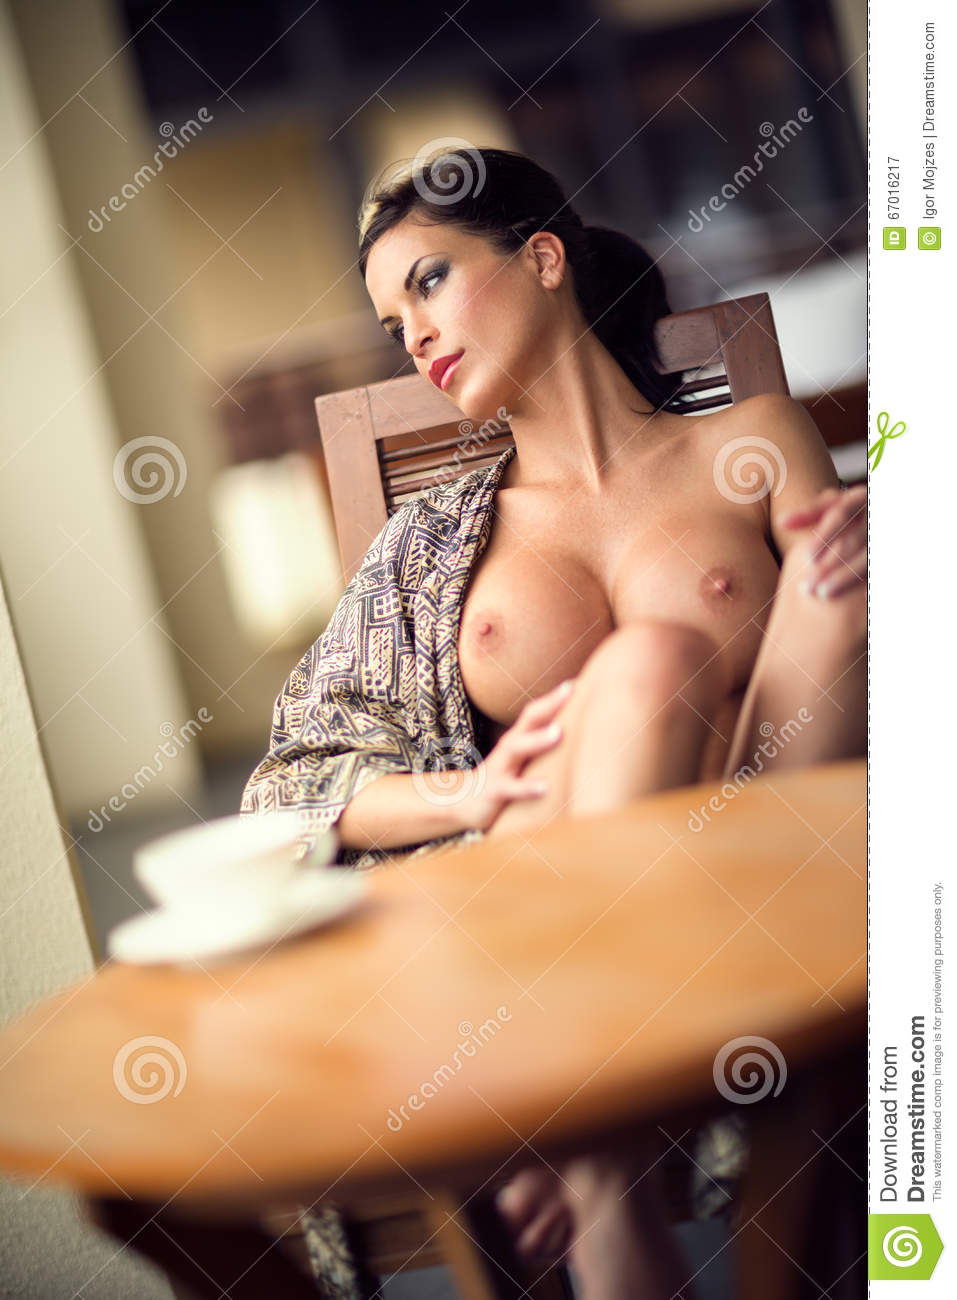 Naked woman drinking morning coffee agree, very